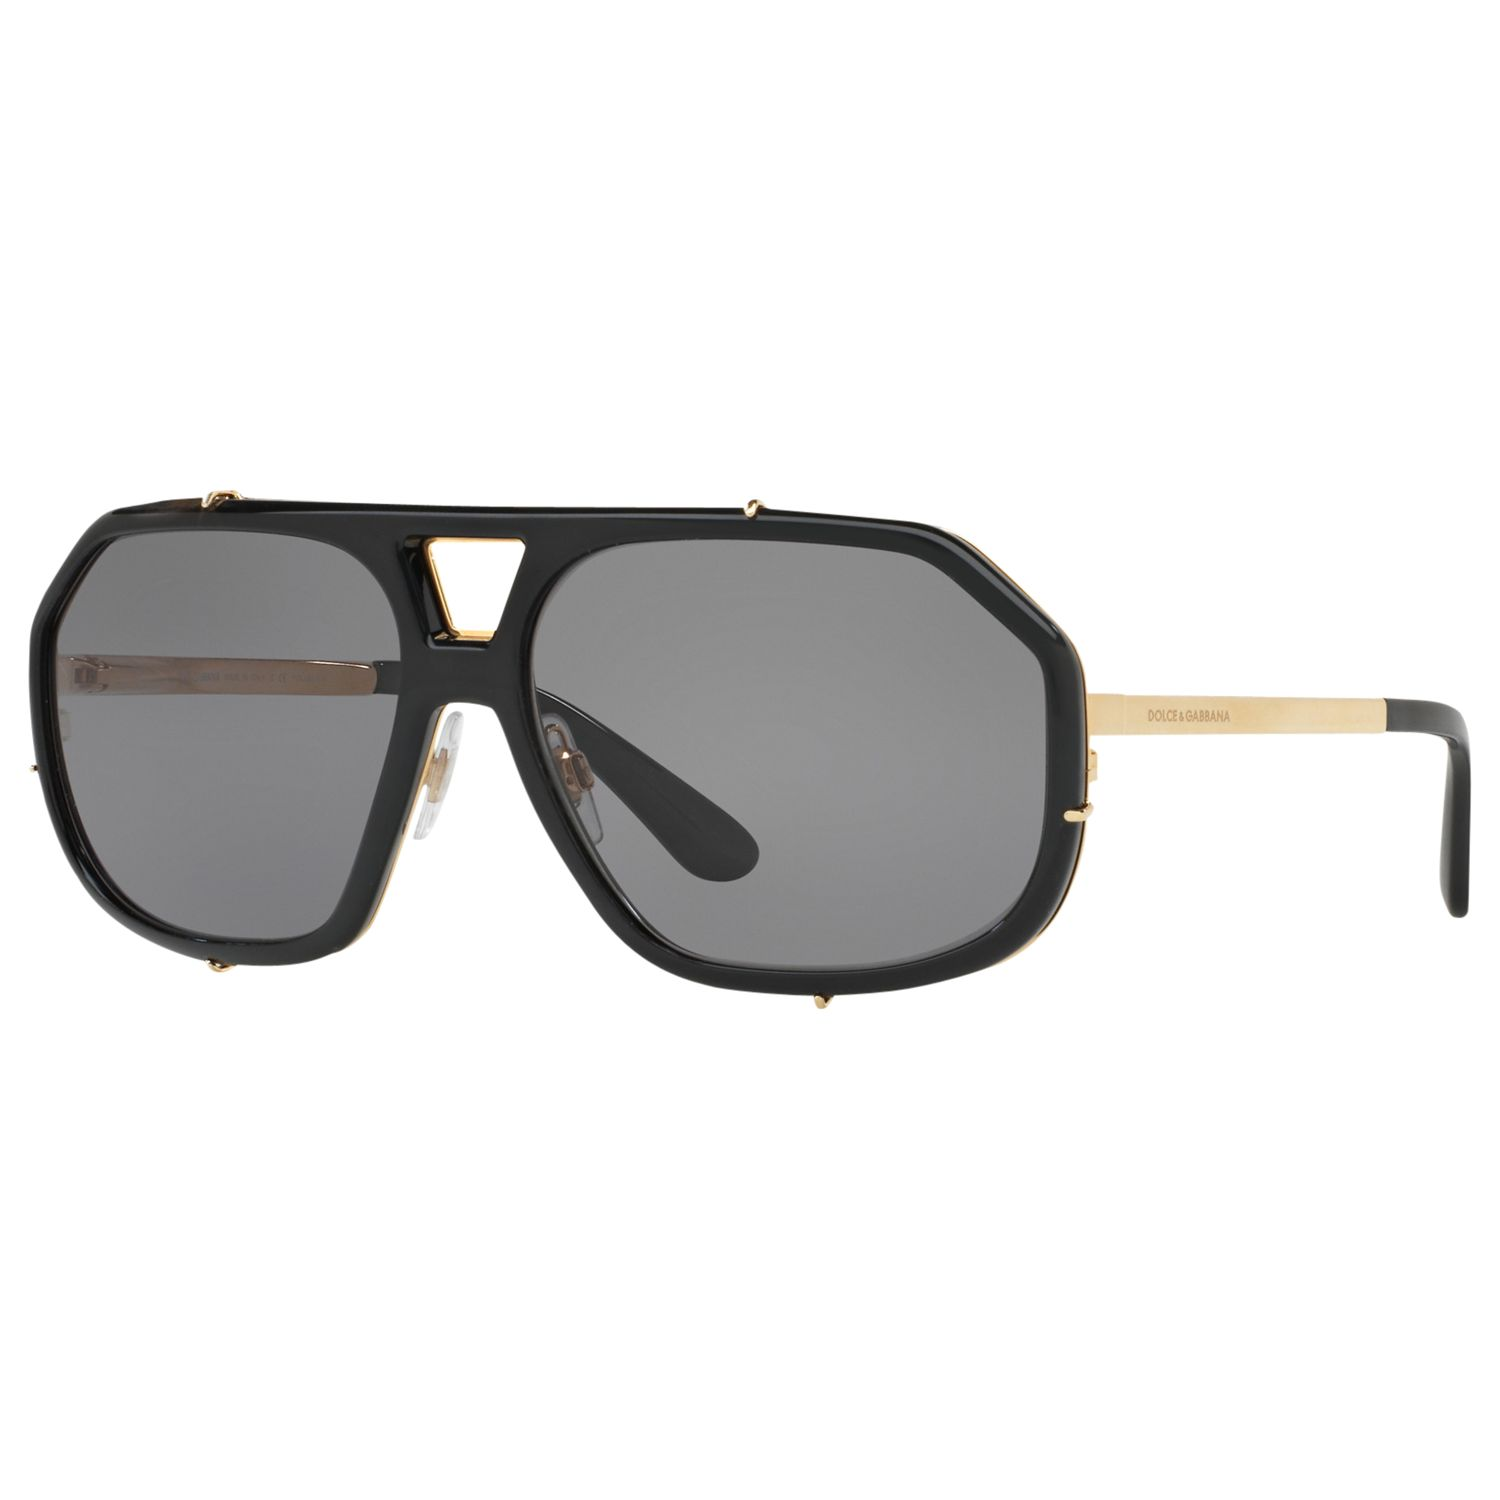 Dolce & Gabbana Dolce & Gabbana DG2167 Polarised Aviator Sunglasses, Black/Grey